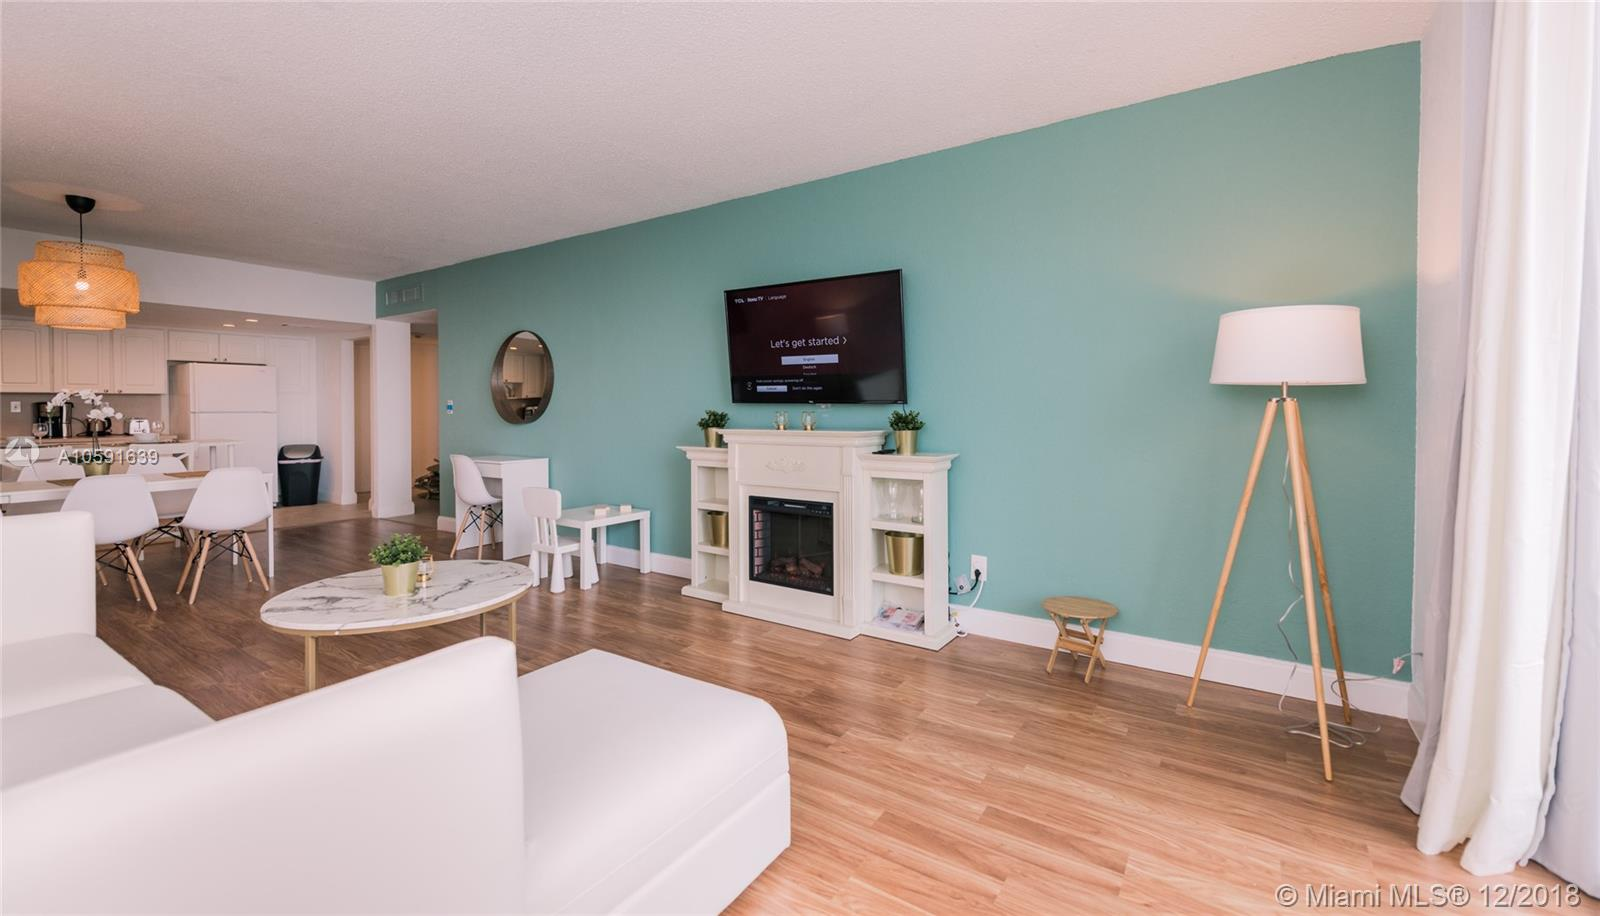 19390 Collins Ave # 125, Sunny Isles Beach, Florida 33160, 1 Bedroom Bedrooms, ,2 BathroomsBathrooms,Residential Lease,For Rent,19390 Collins Ave # 125,A10591639